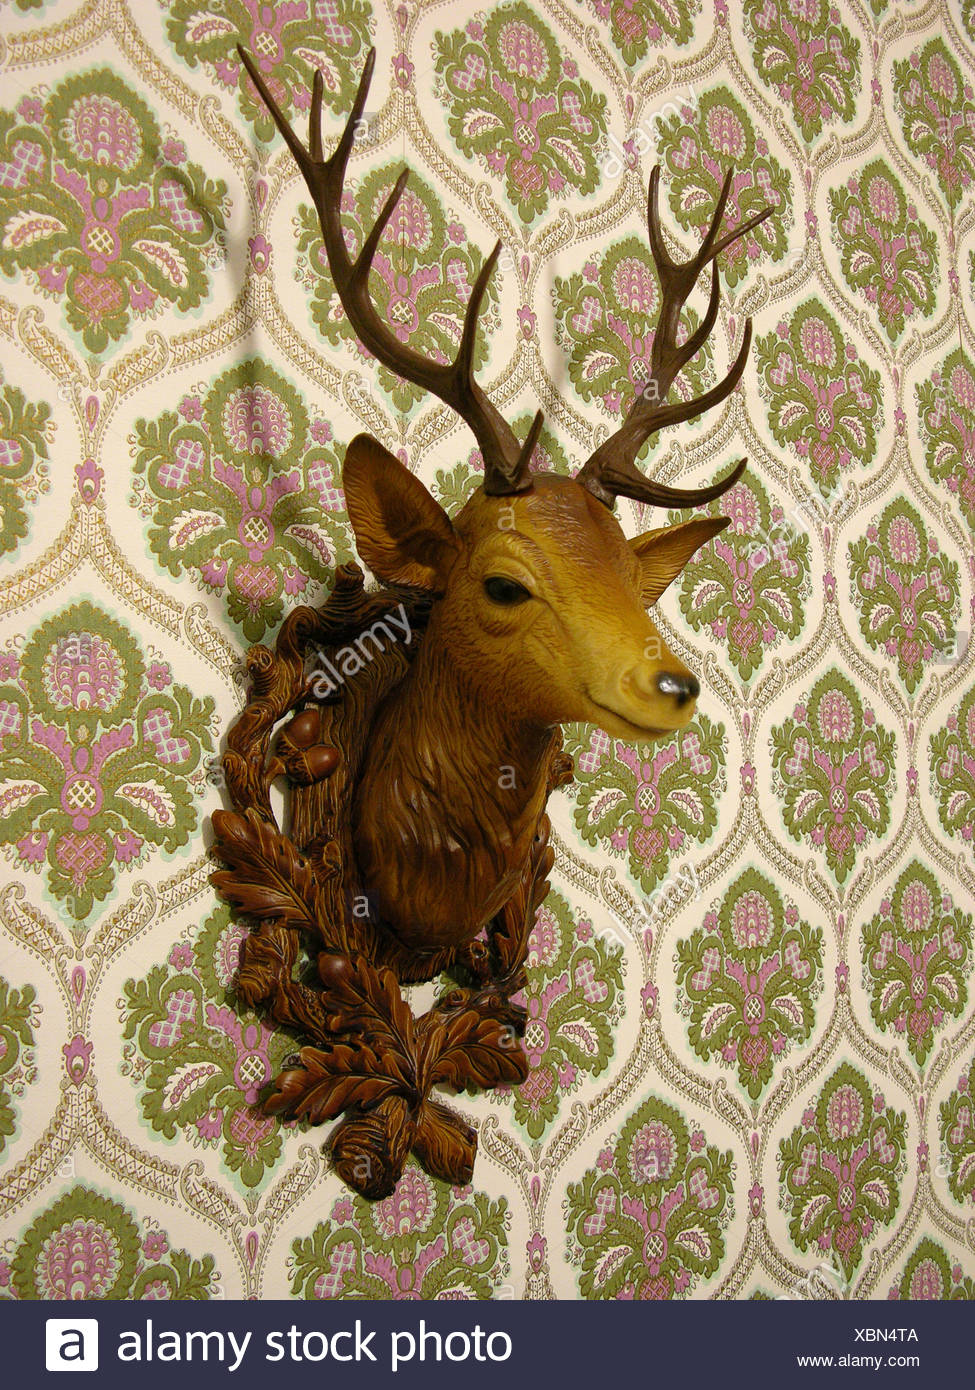 Plastic deer head on an old-fashioned wallpaper - Stock Image